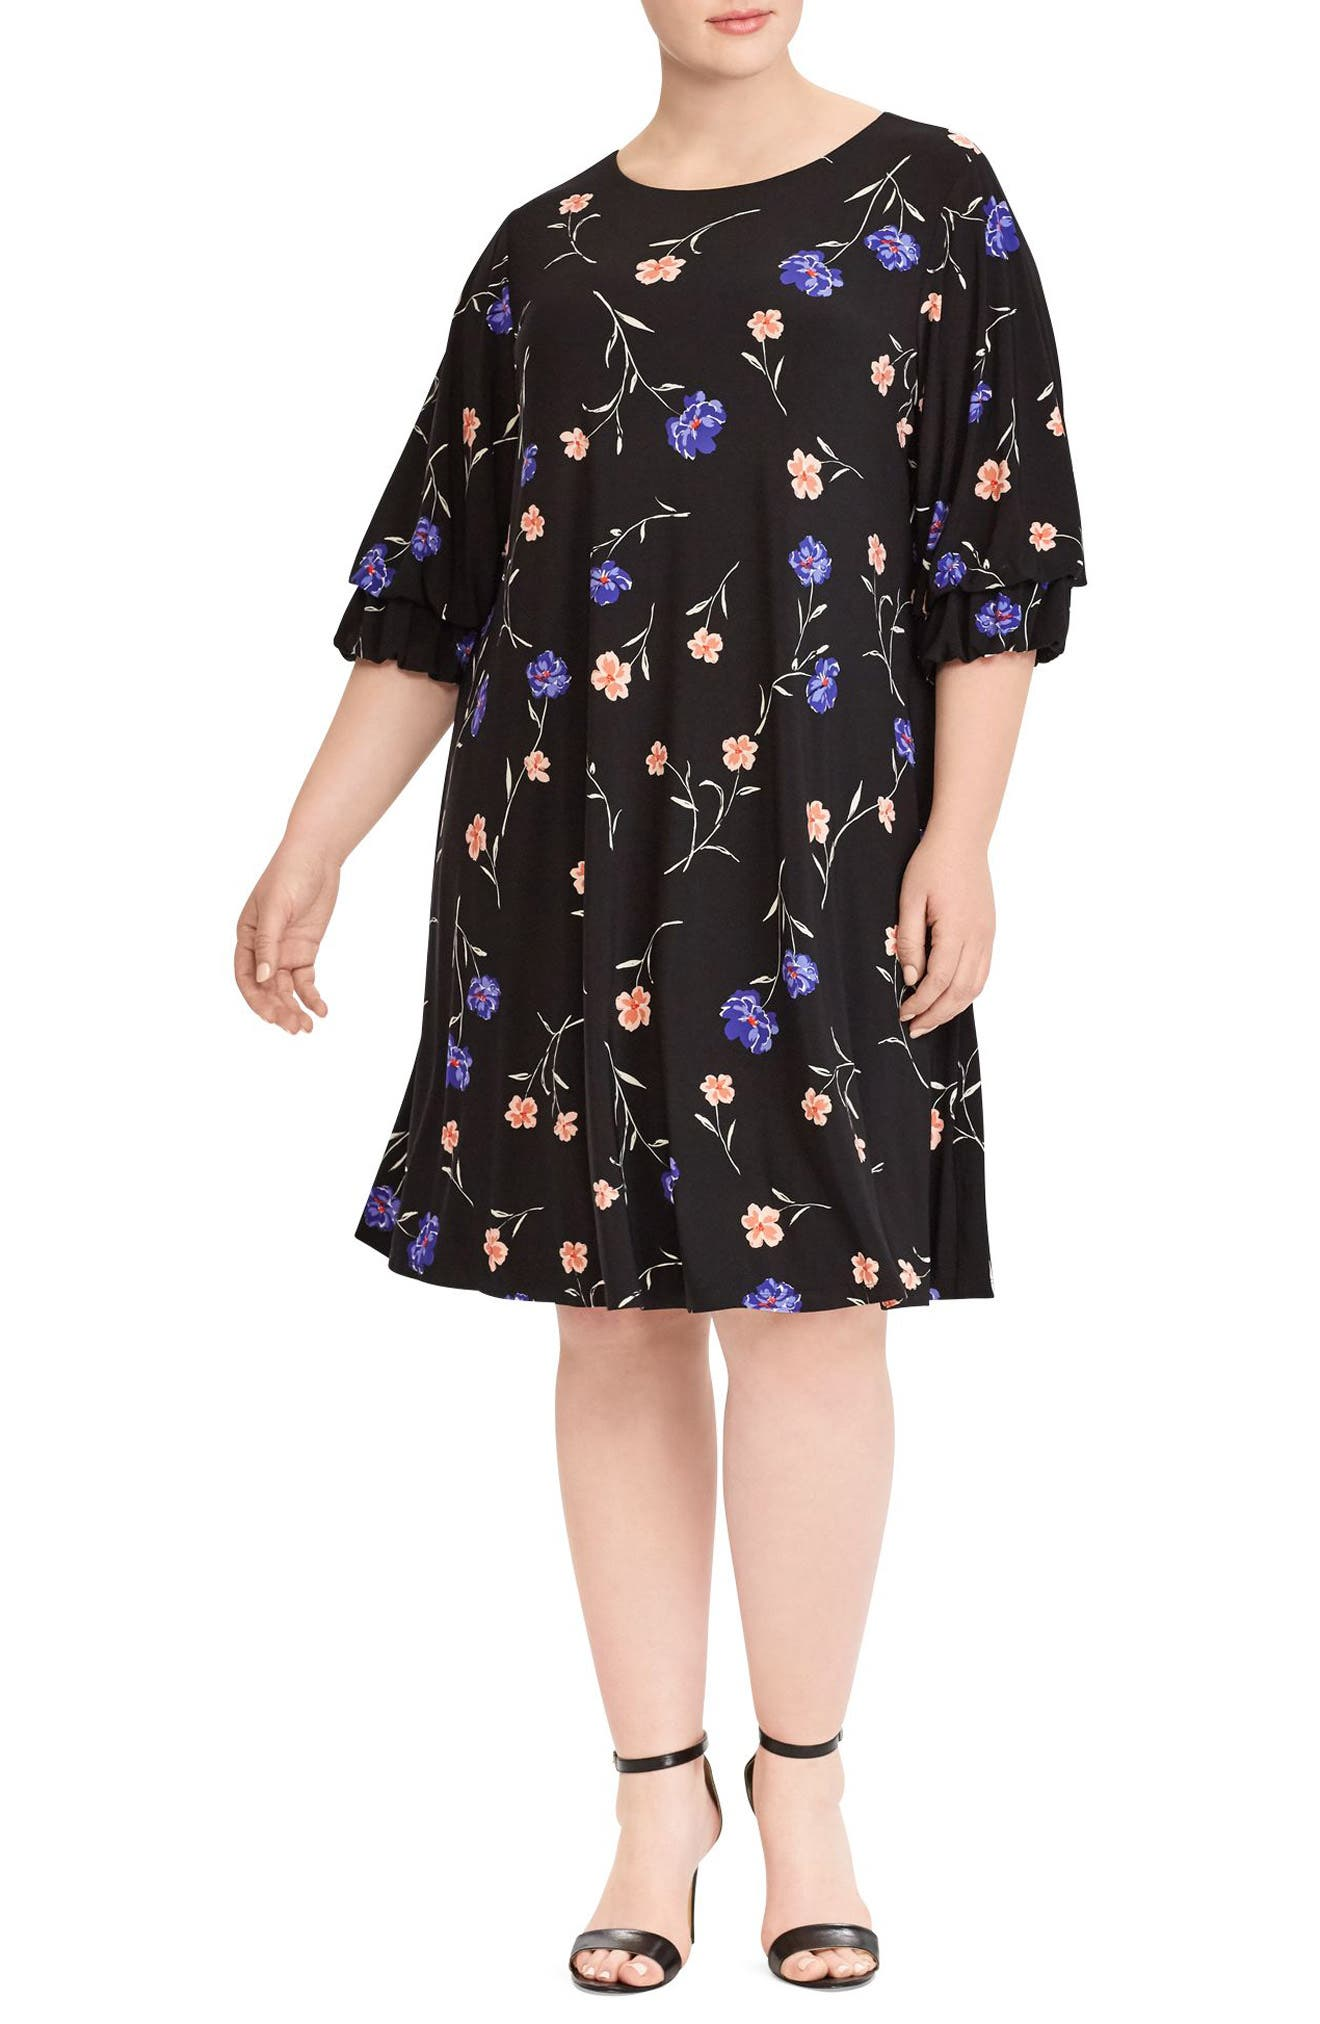 Ruffle Sleeve Floral Print Dress,                             Main thumbnail 1, color,                             001